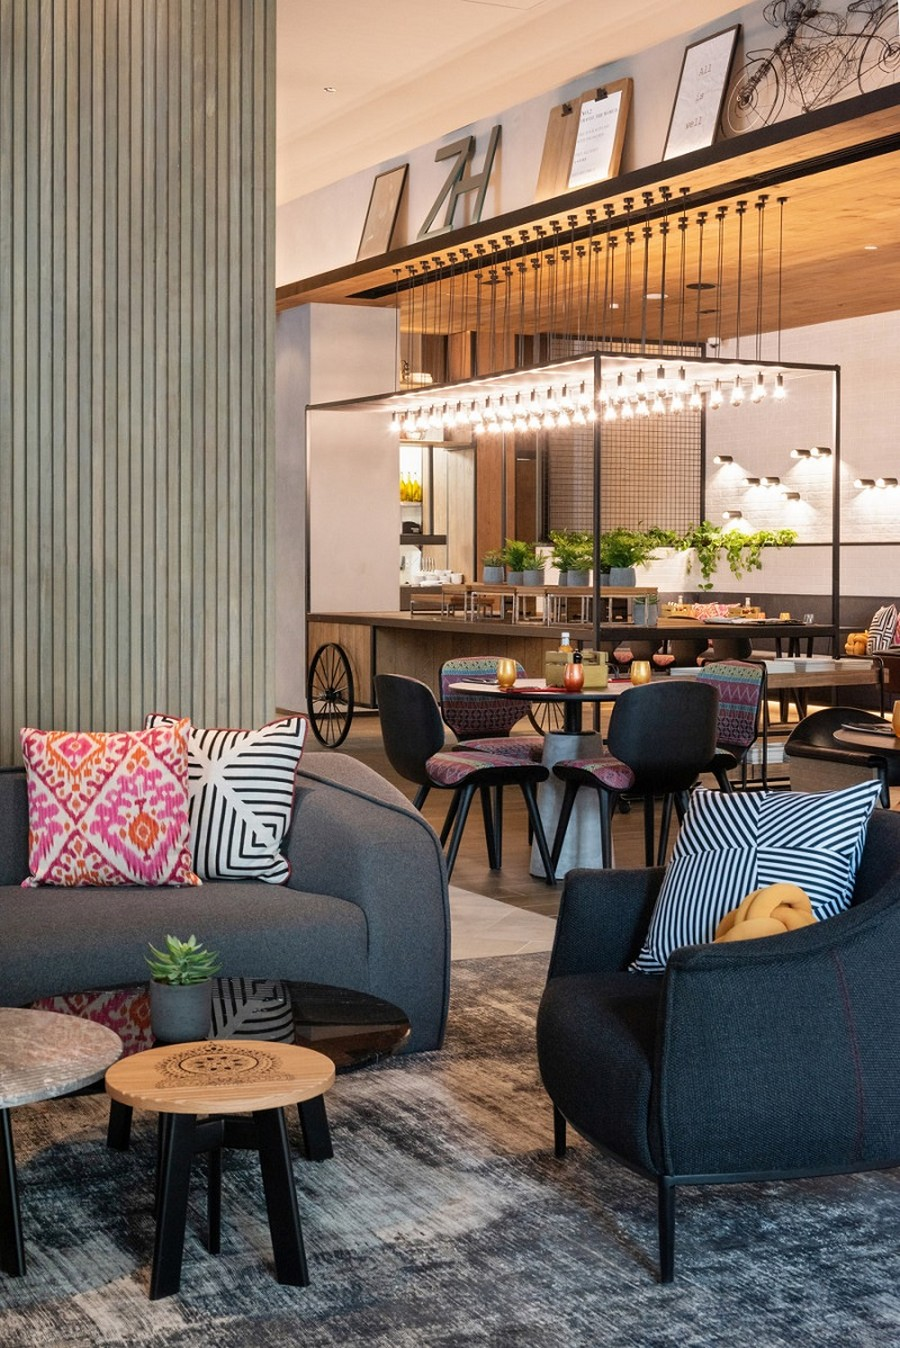 Zabeel House's Trendy Interiors Are One Of The Top Spots In Dubai zabeel house Zabeel House's Trendy Interiors Are One Of The Top Spots In Dubai New Interior Design Project By Zabeel House in Dubai 20